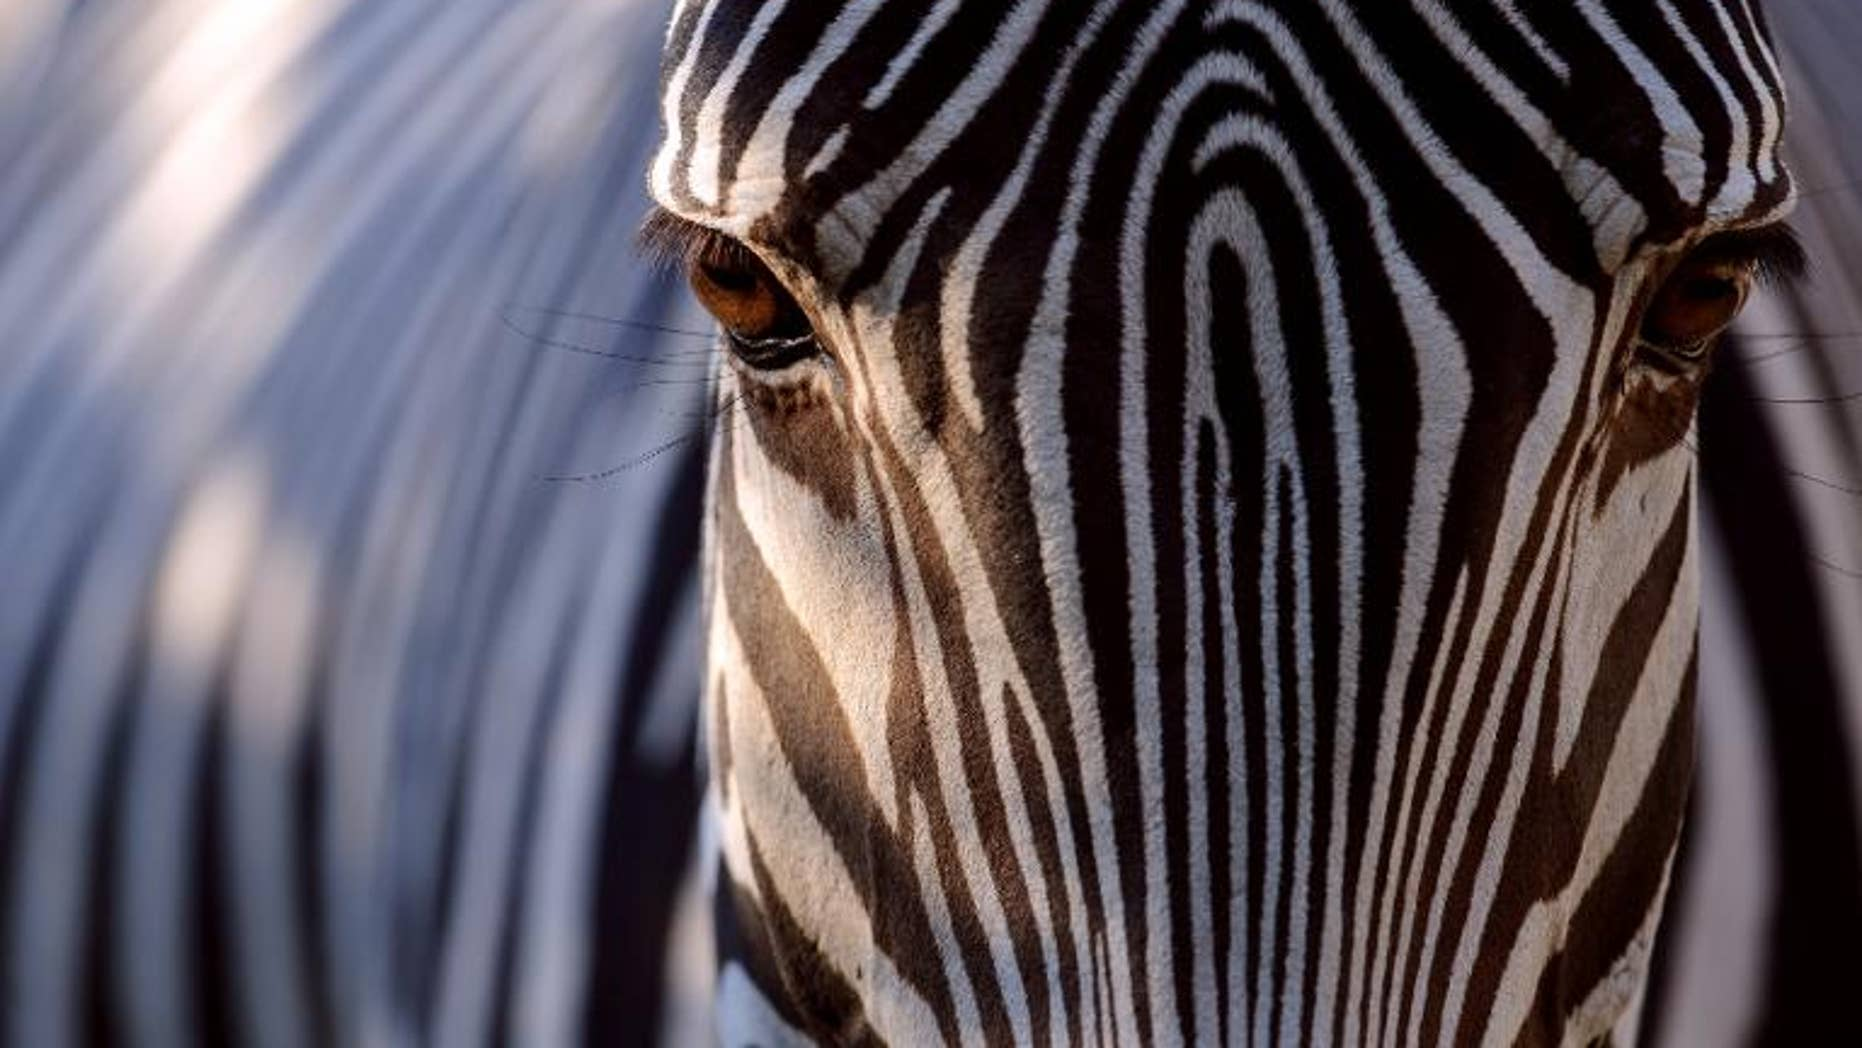 A British zoo said Wednesday it has banned visitors from wearing leopard or zebra print clothes because they are confusing the animals.